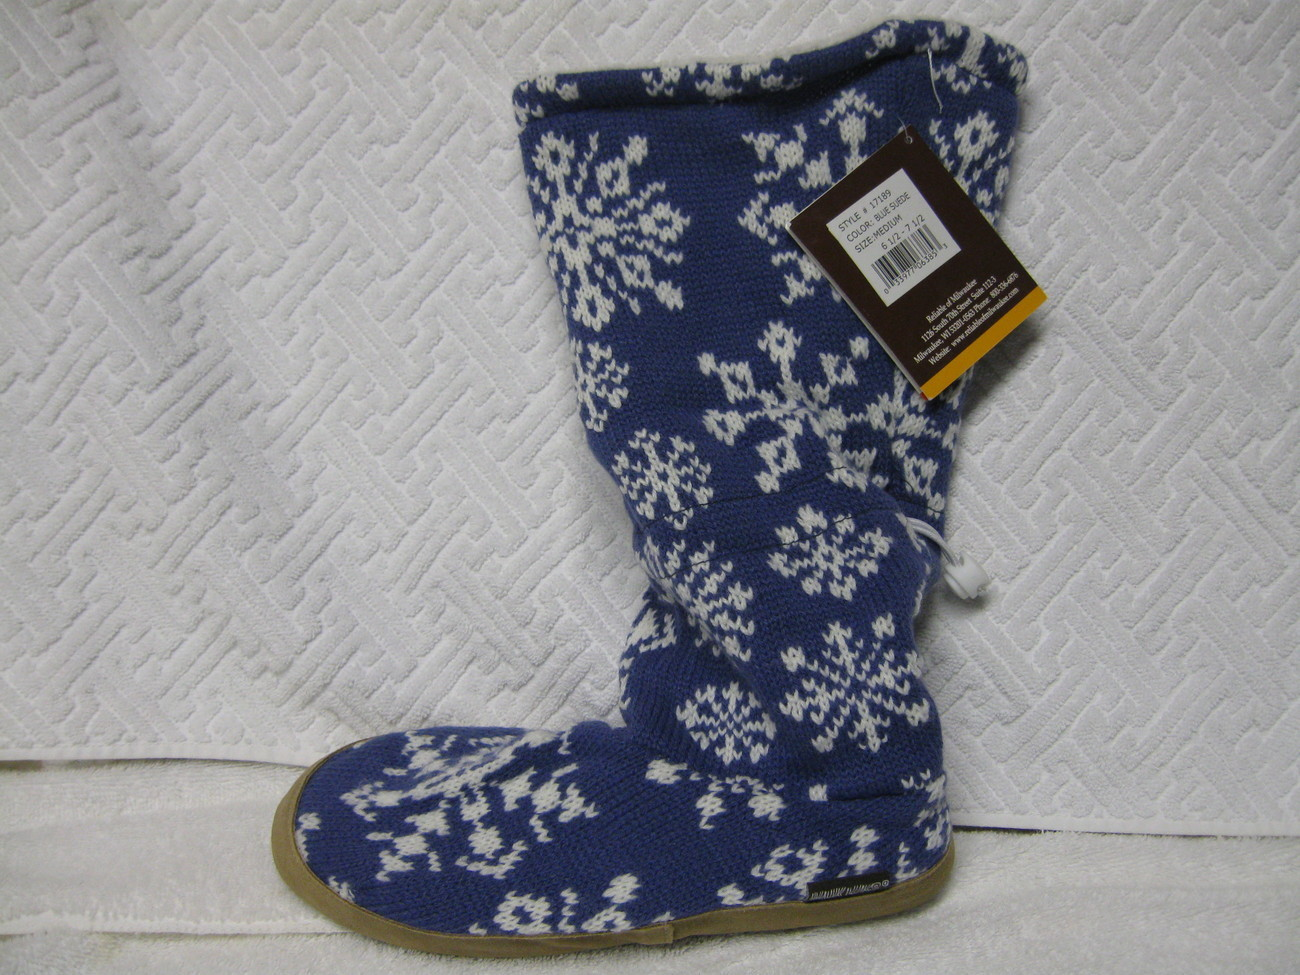 WOMAN SHOES  MUK LUK SLIPPER BOOTS  size 7